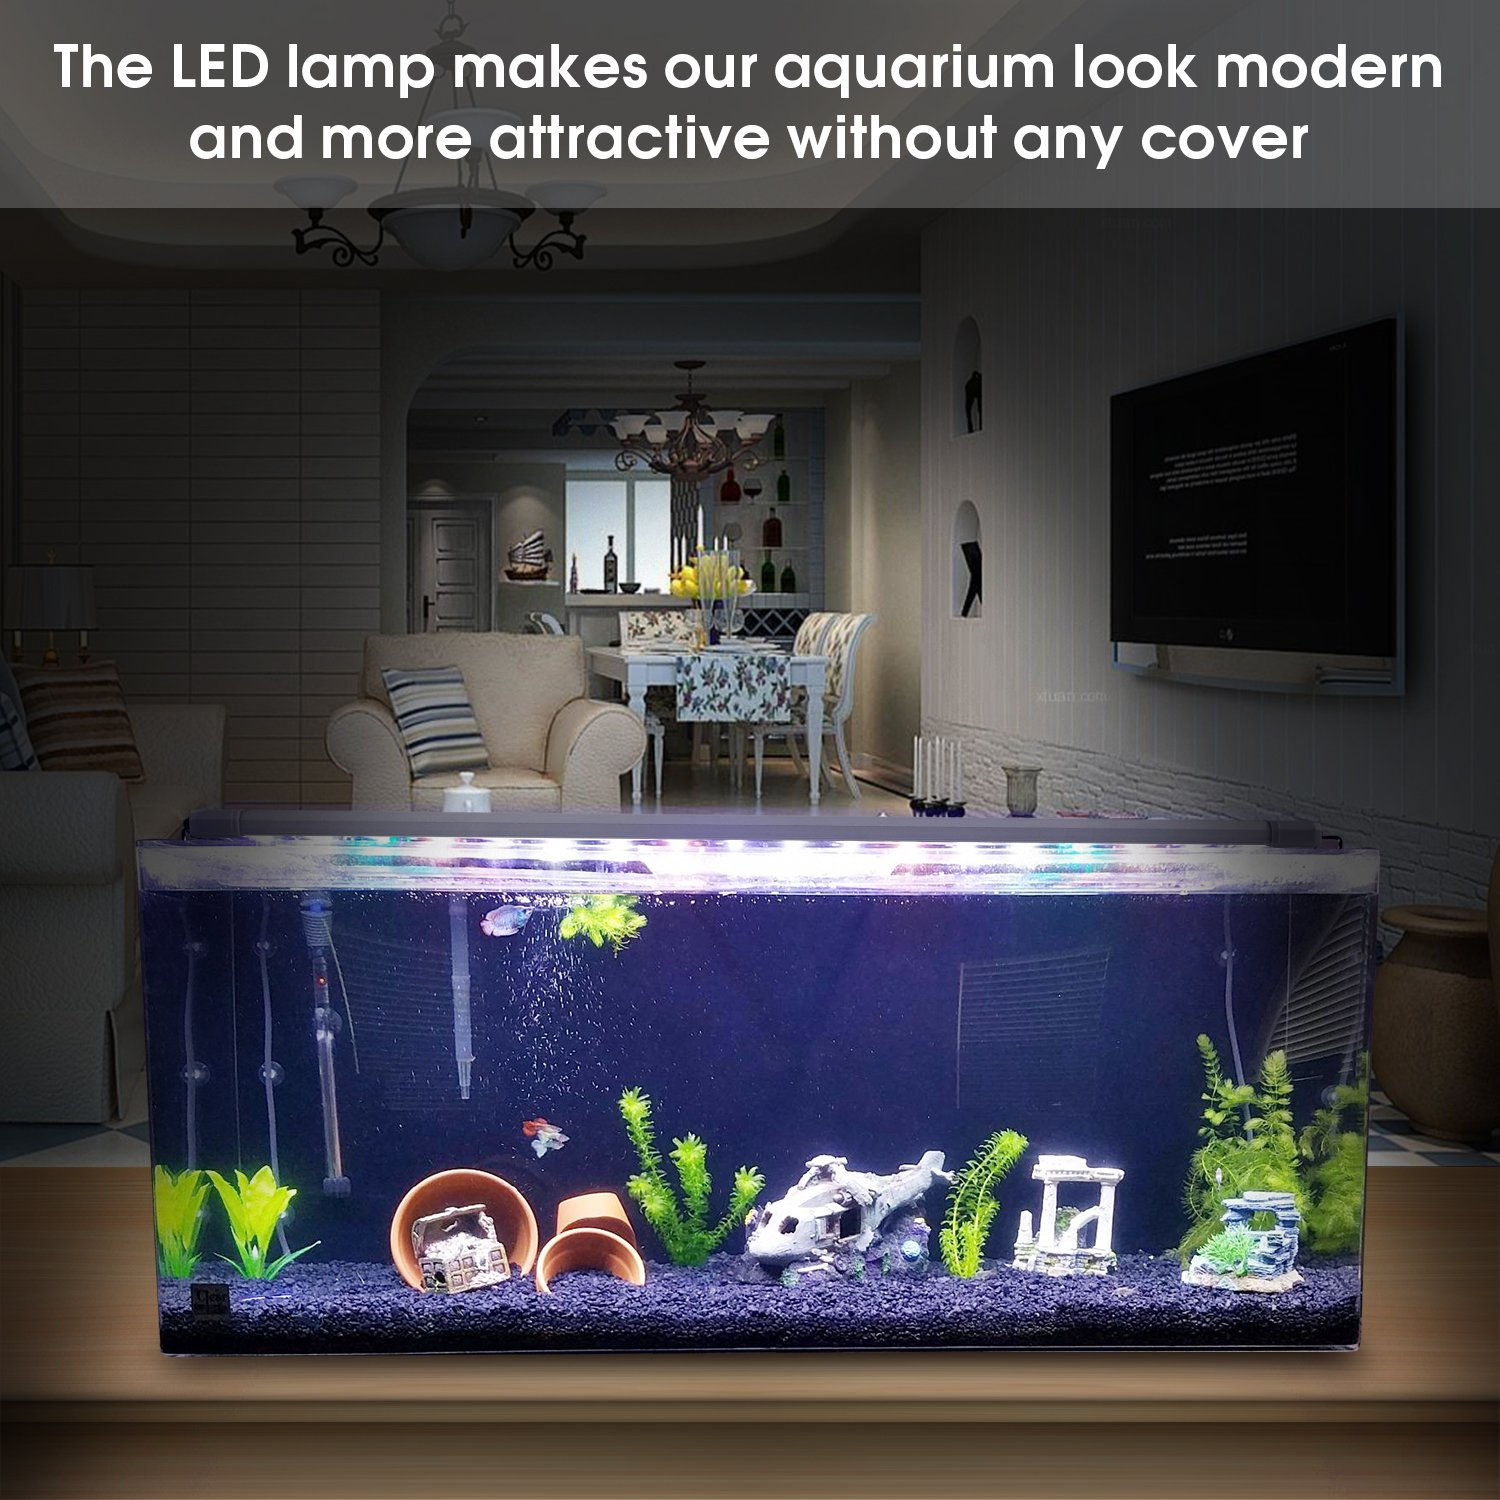 7500K BELLALICHT Éclairage LED pour Aquarium Lampe Rampe 180 LED Aquarium deau Douce RGBW ou Bleu Lumieres 31W LED pour 90-110CM Aquarium